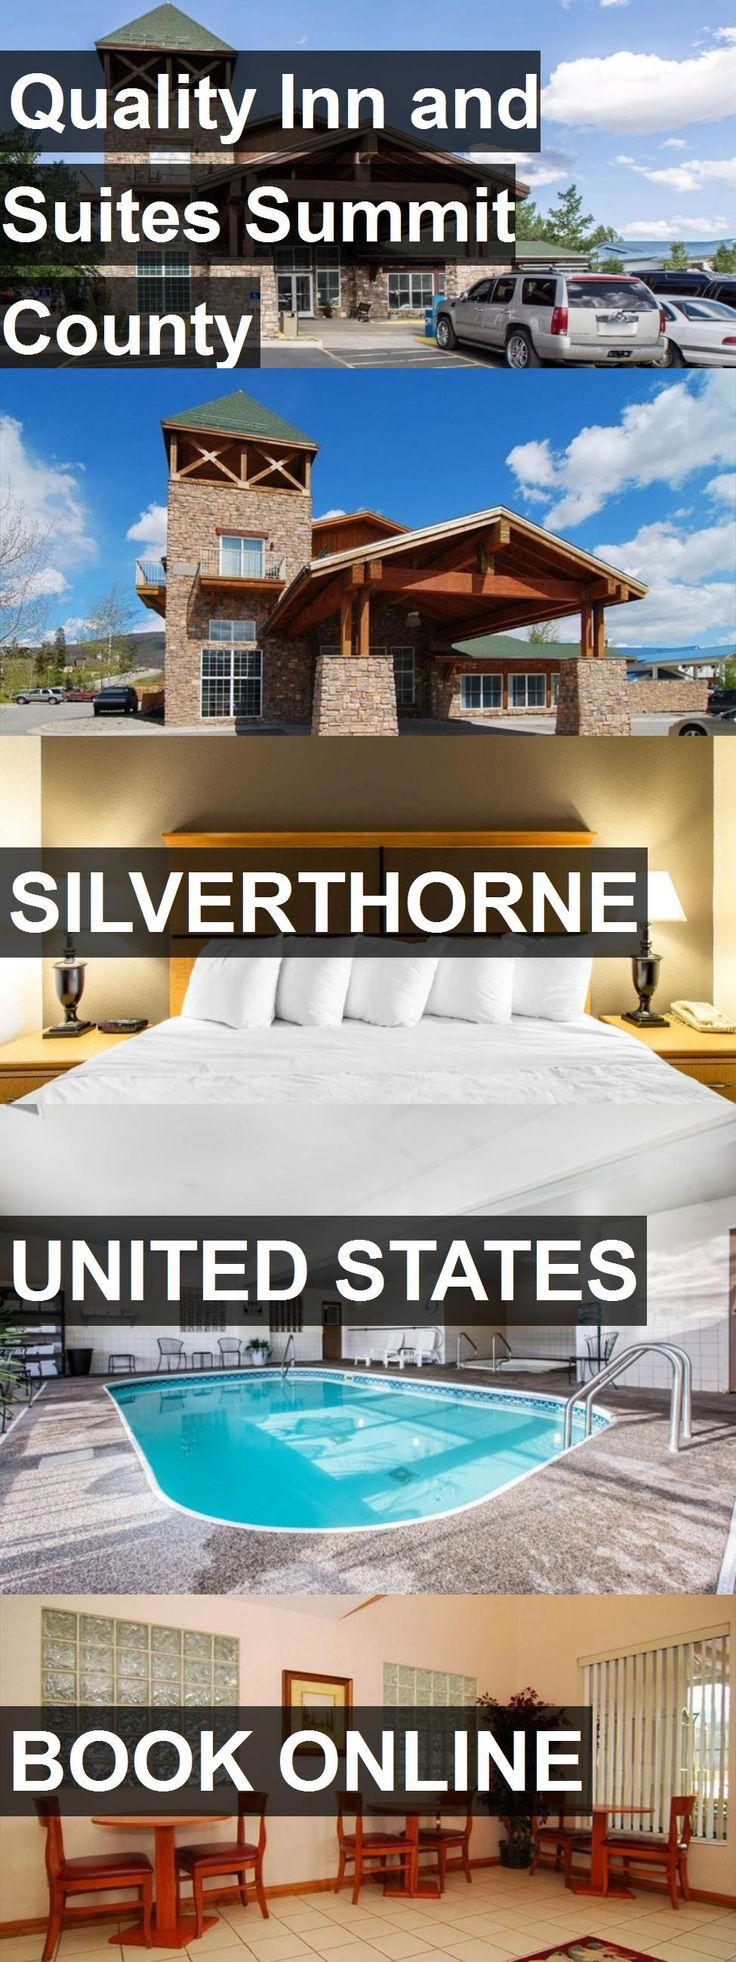 Hotel Quality Inn and Suites Summit County in Silverthorne, United States. For more information, photos, reviews and best prices please follow the link. #UnitedStates #Silverthorne #travel #vacation #hotel